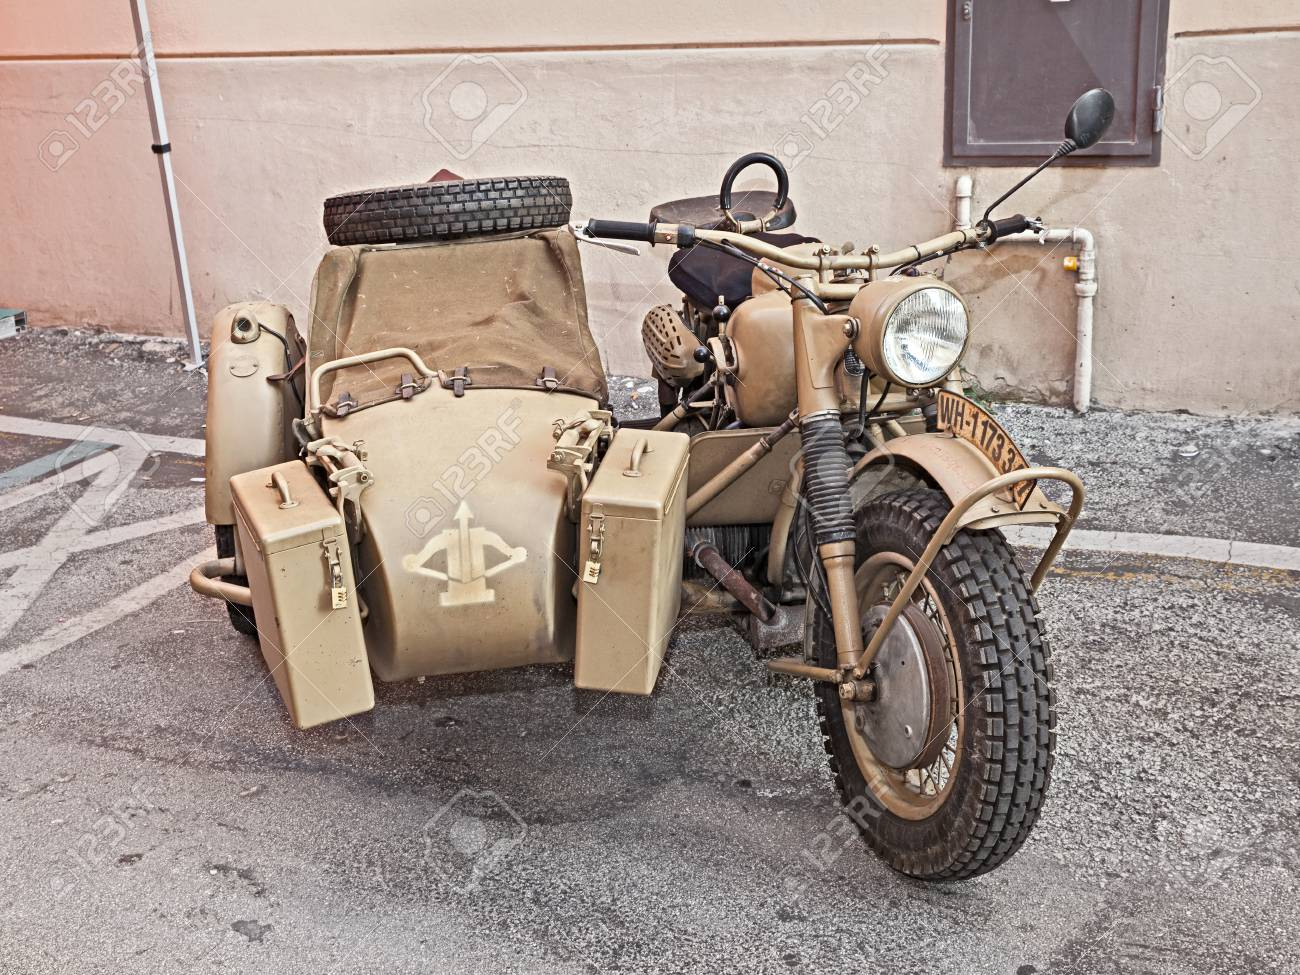 Old Bmw R75 750 Cc World War Ii Era Motorcycle With Sidecar Stock Photo Picture And Royalty Free Image Image 83515375